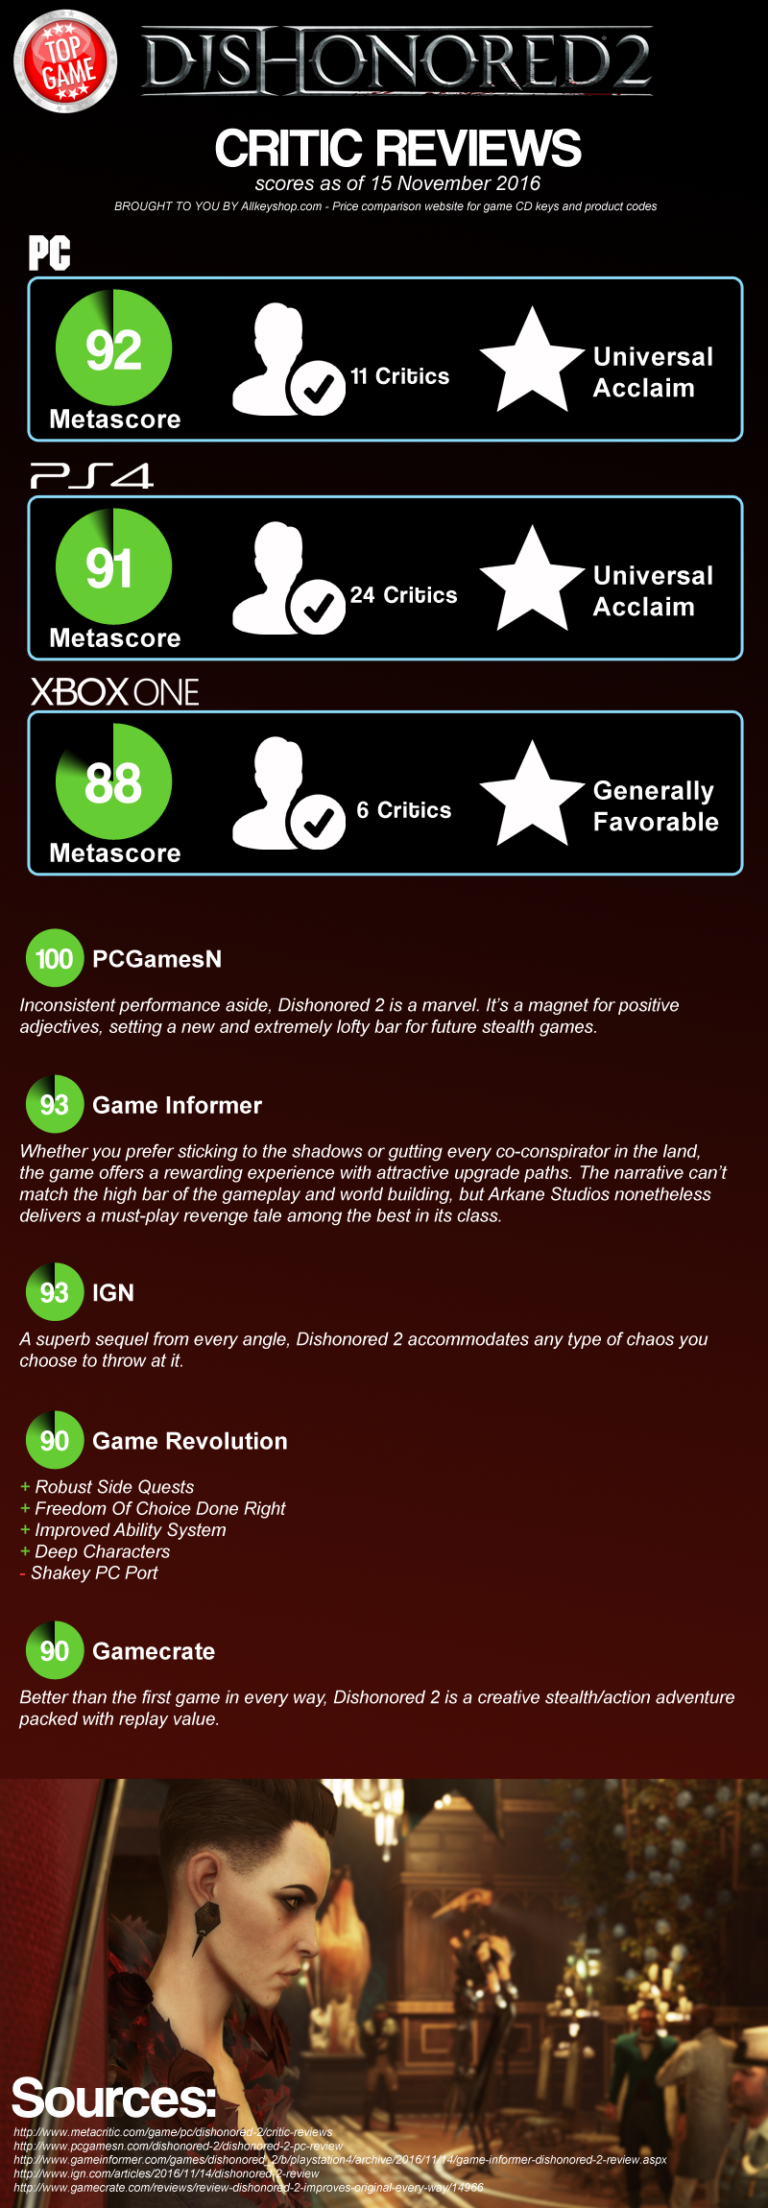 Dishonored 2 Critic Reviews